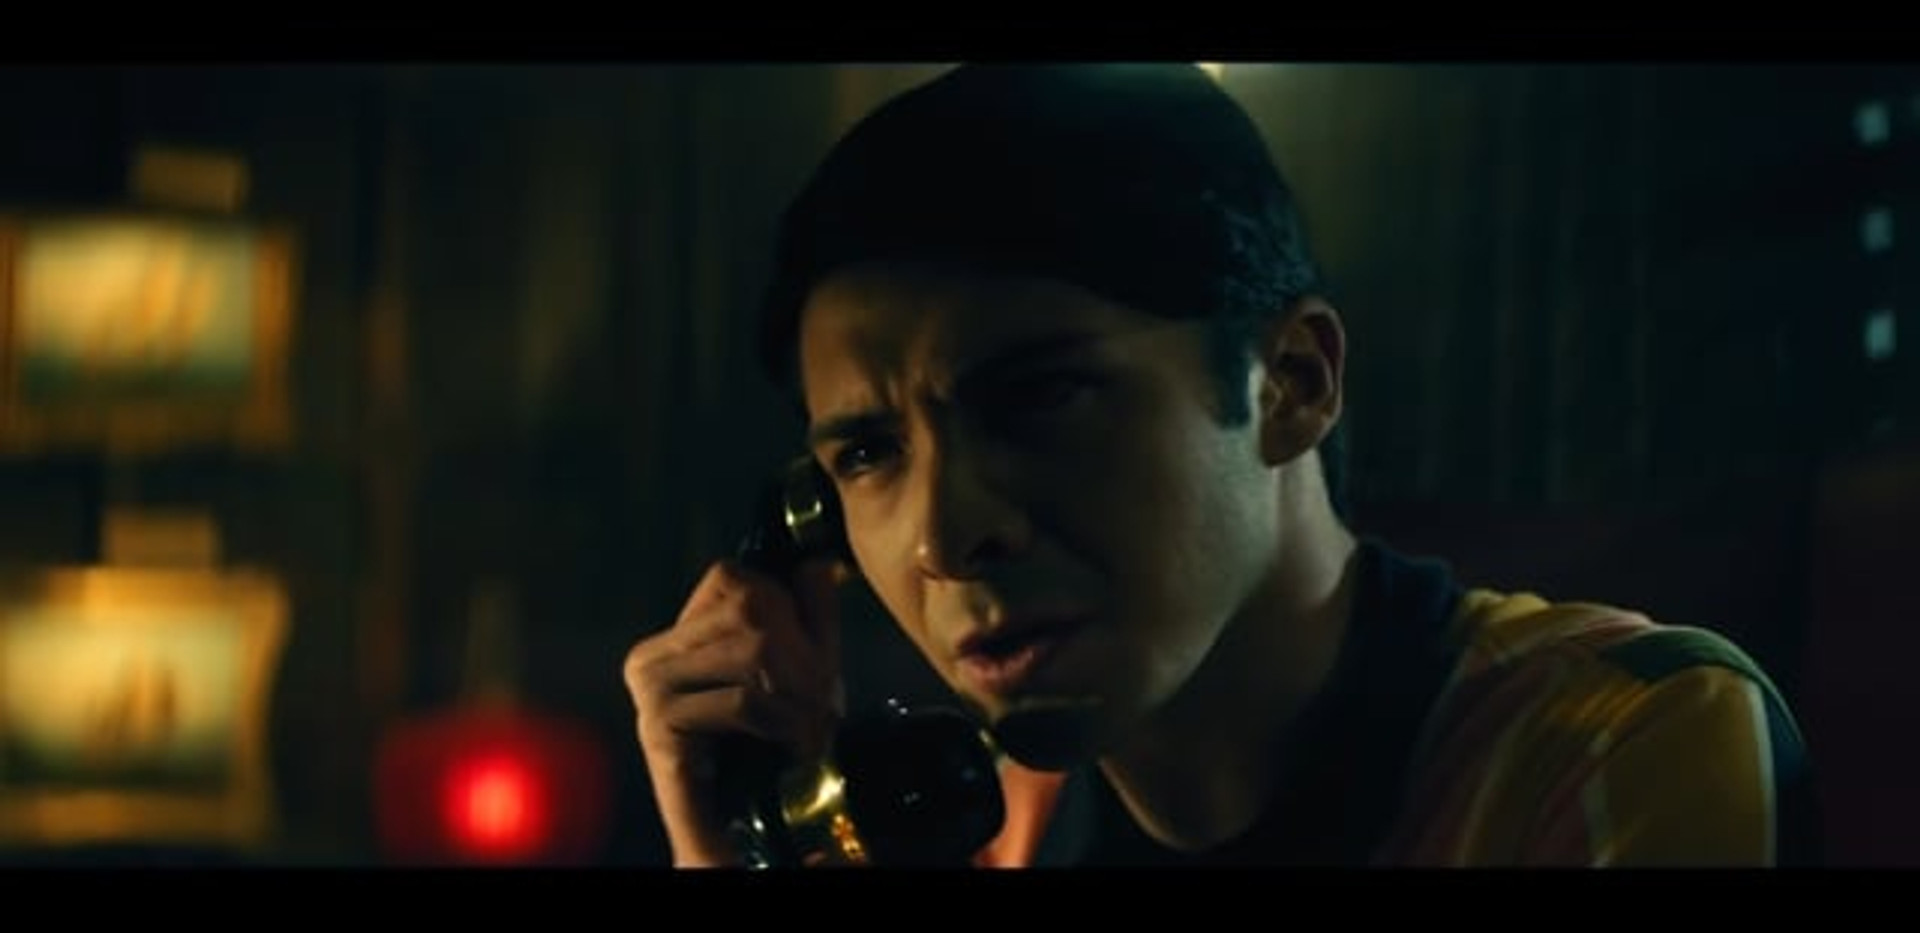 TRAILER THE CALL